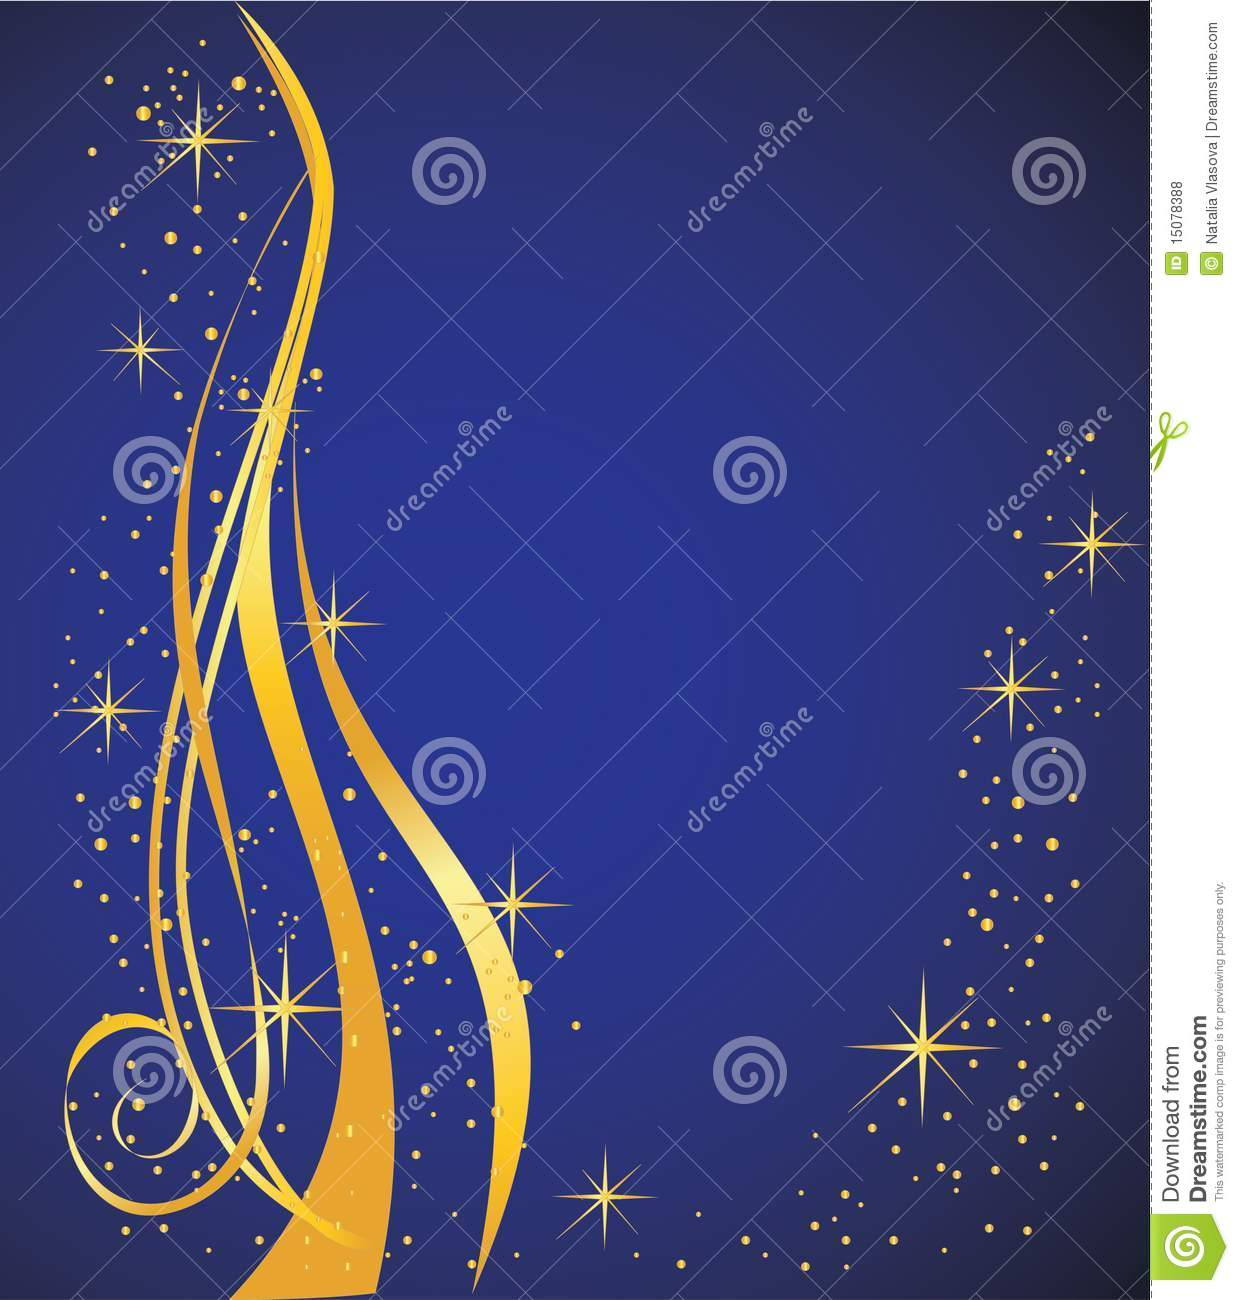 Abstract background blue and gold royalty free stock